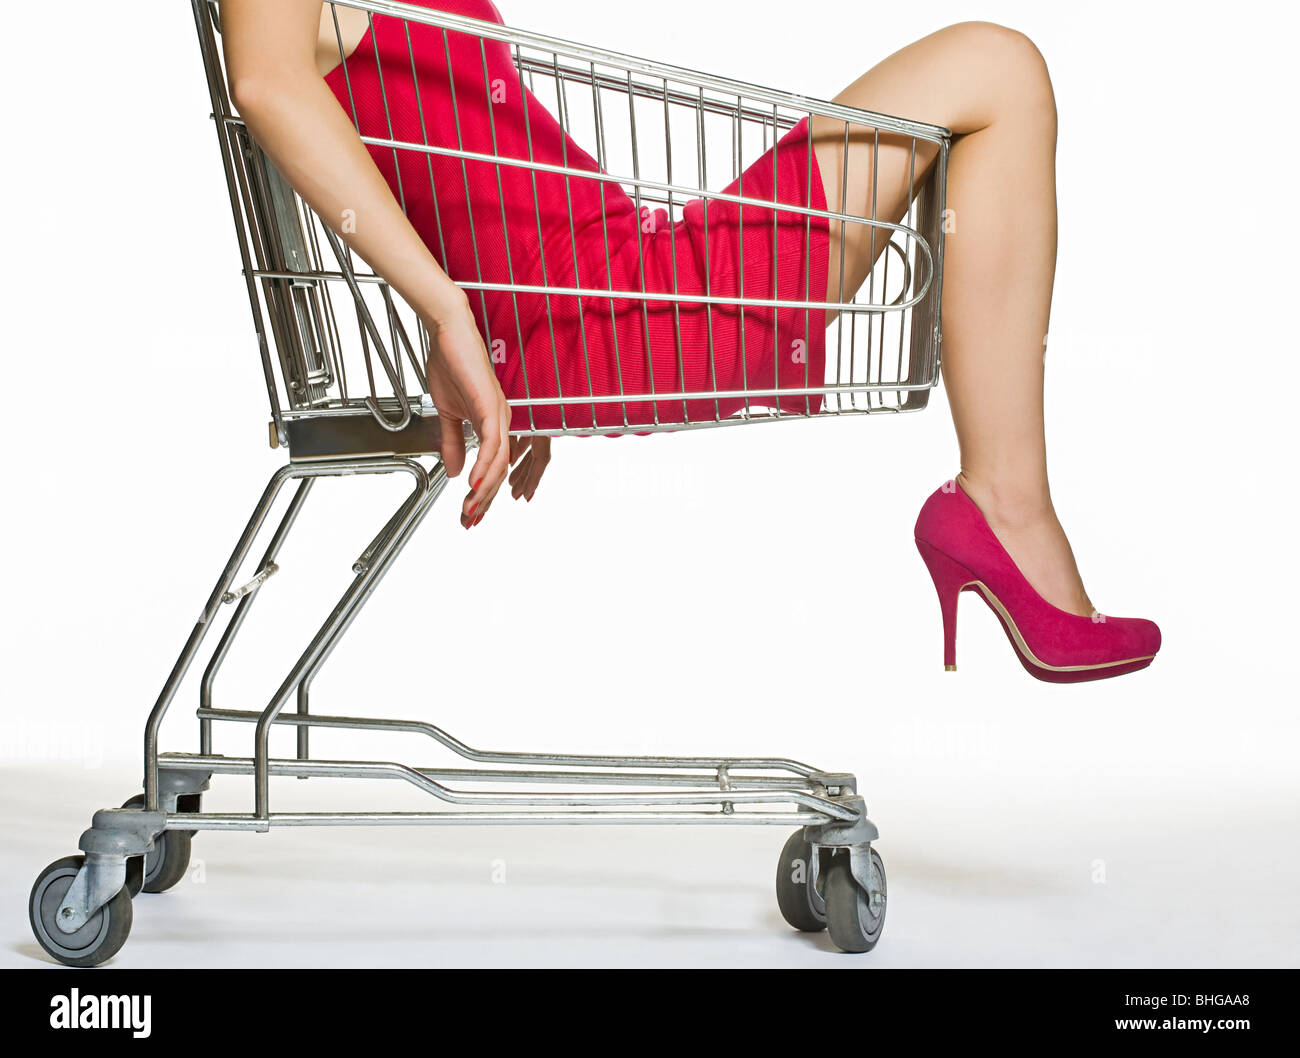 Woman in a shopping trolley - Stock Image